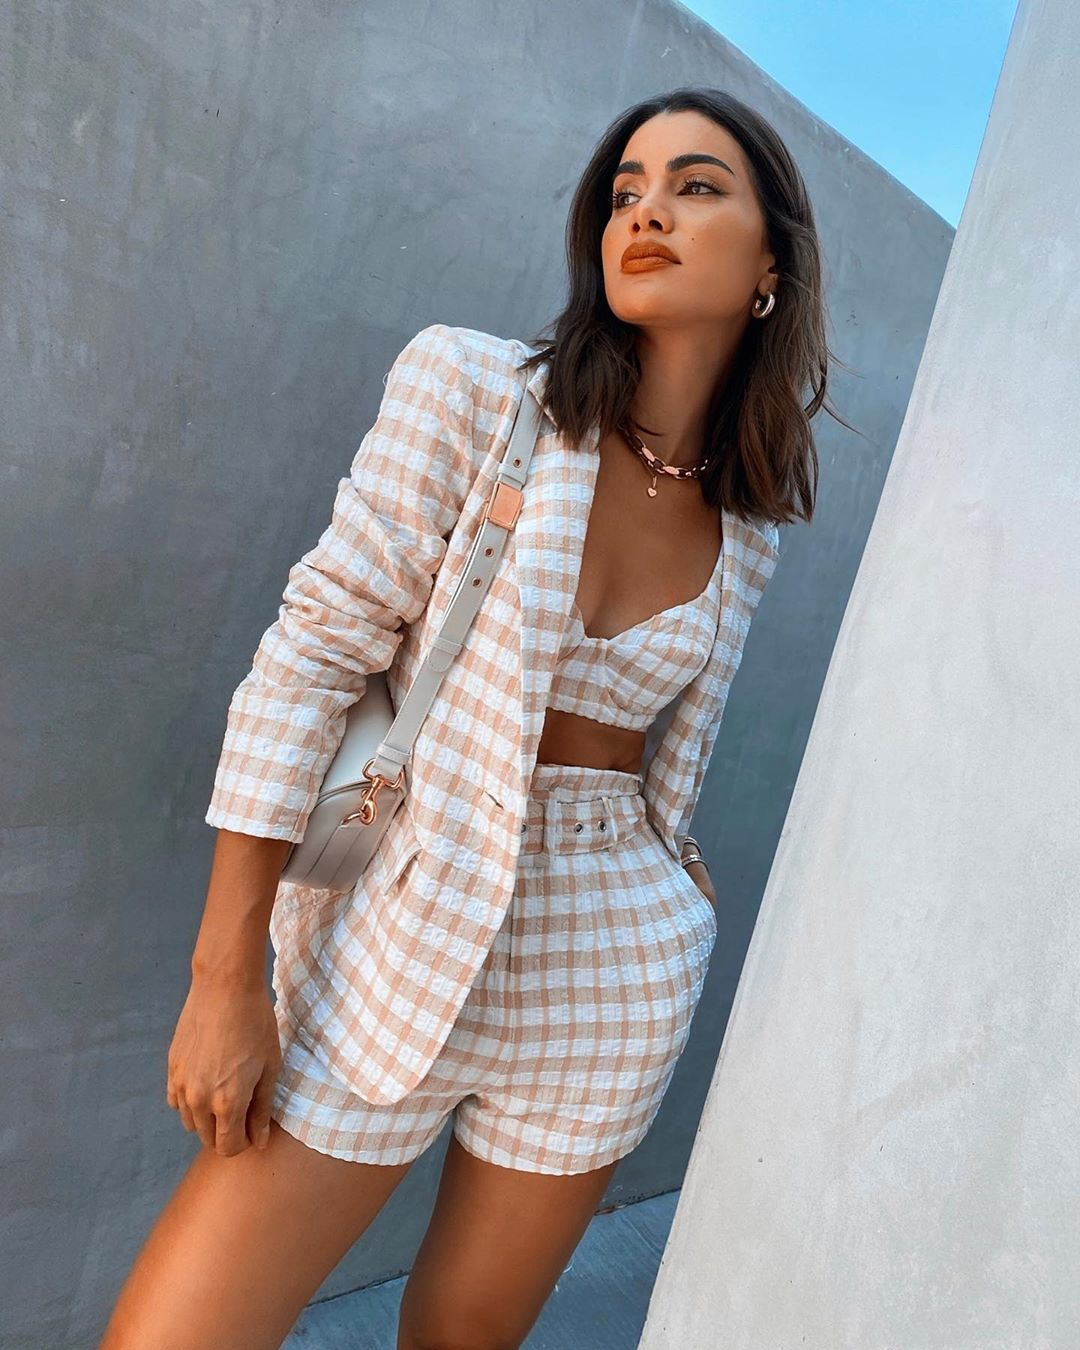 Camila Coelho wearing Matching tan check Camila Coelho printed shorts with high rise with side pockets